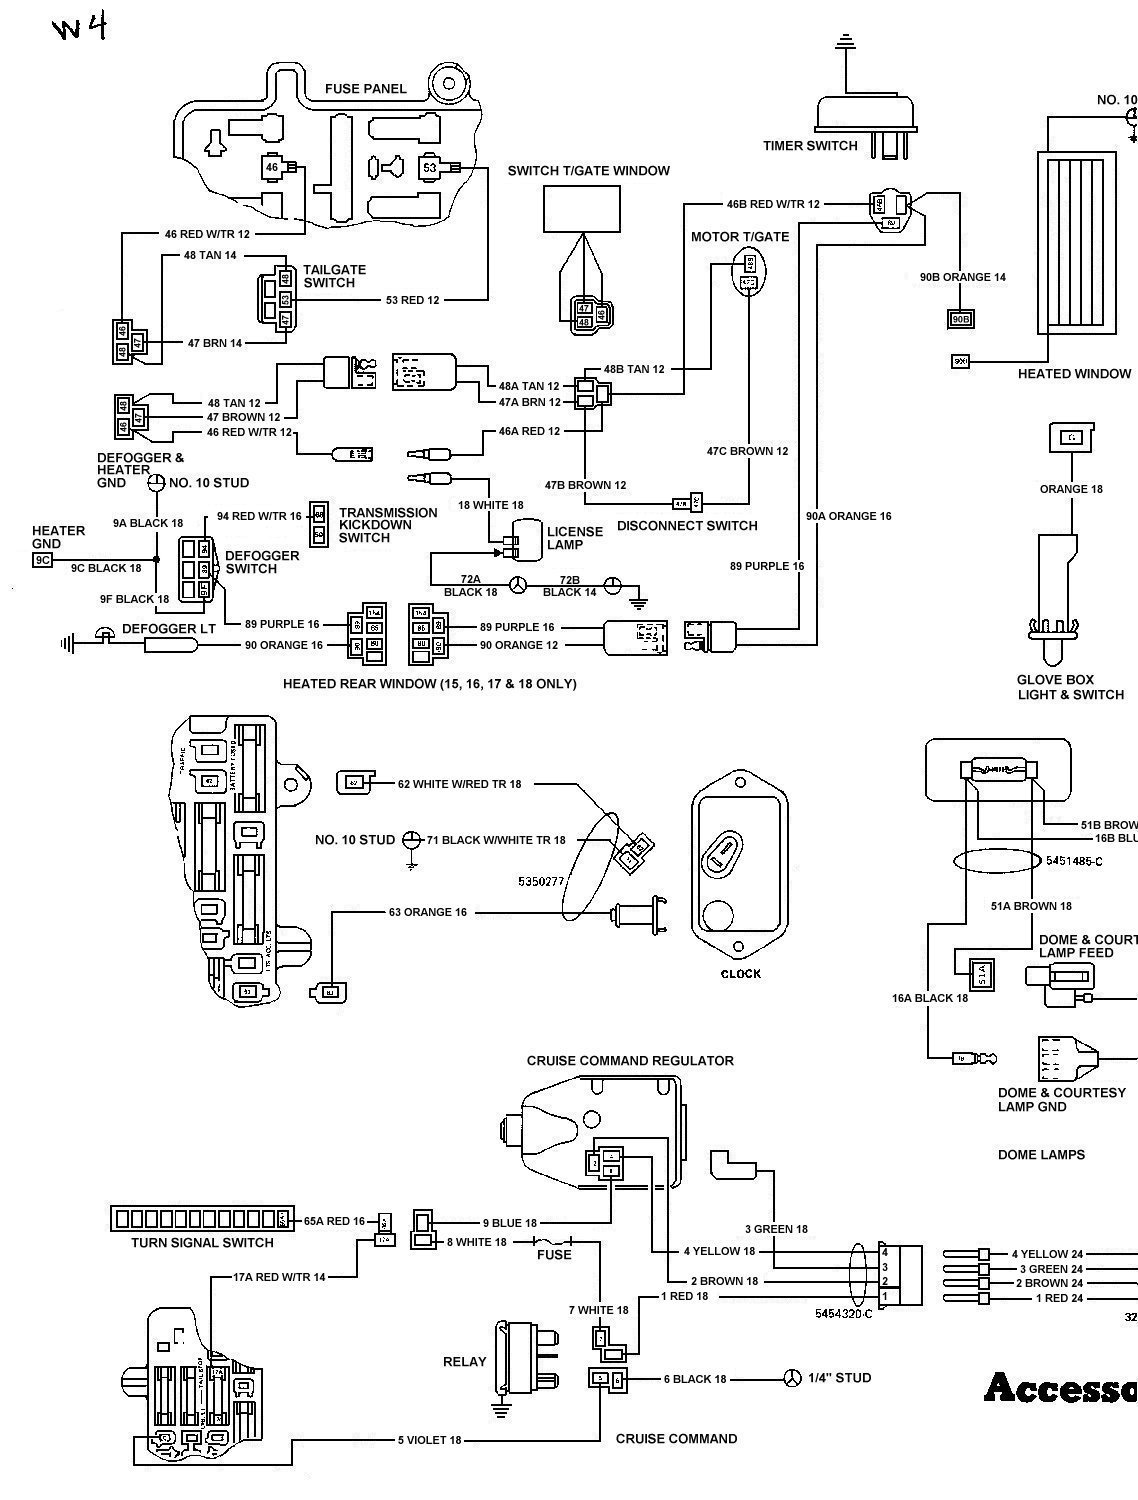 hight resolution of 78 fsj wiringdiagrampage4 tom oljeep collins fsj wiring page 78 fsj wiringdiagrampage4 1979 jeep cj7 starter wiring diagram